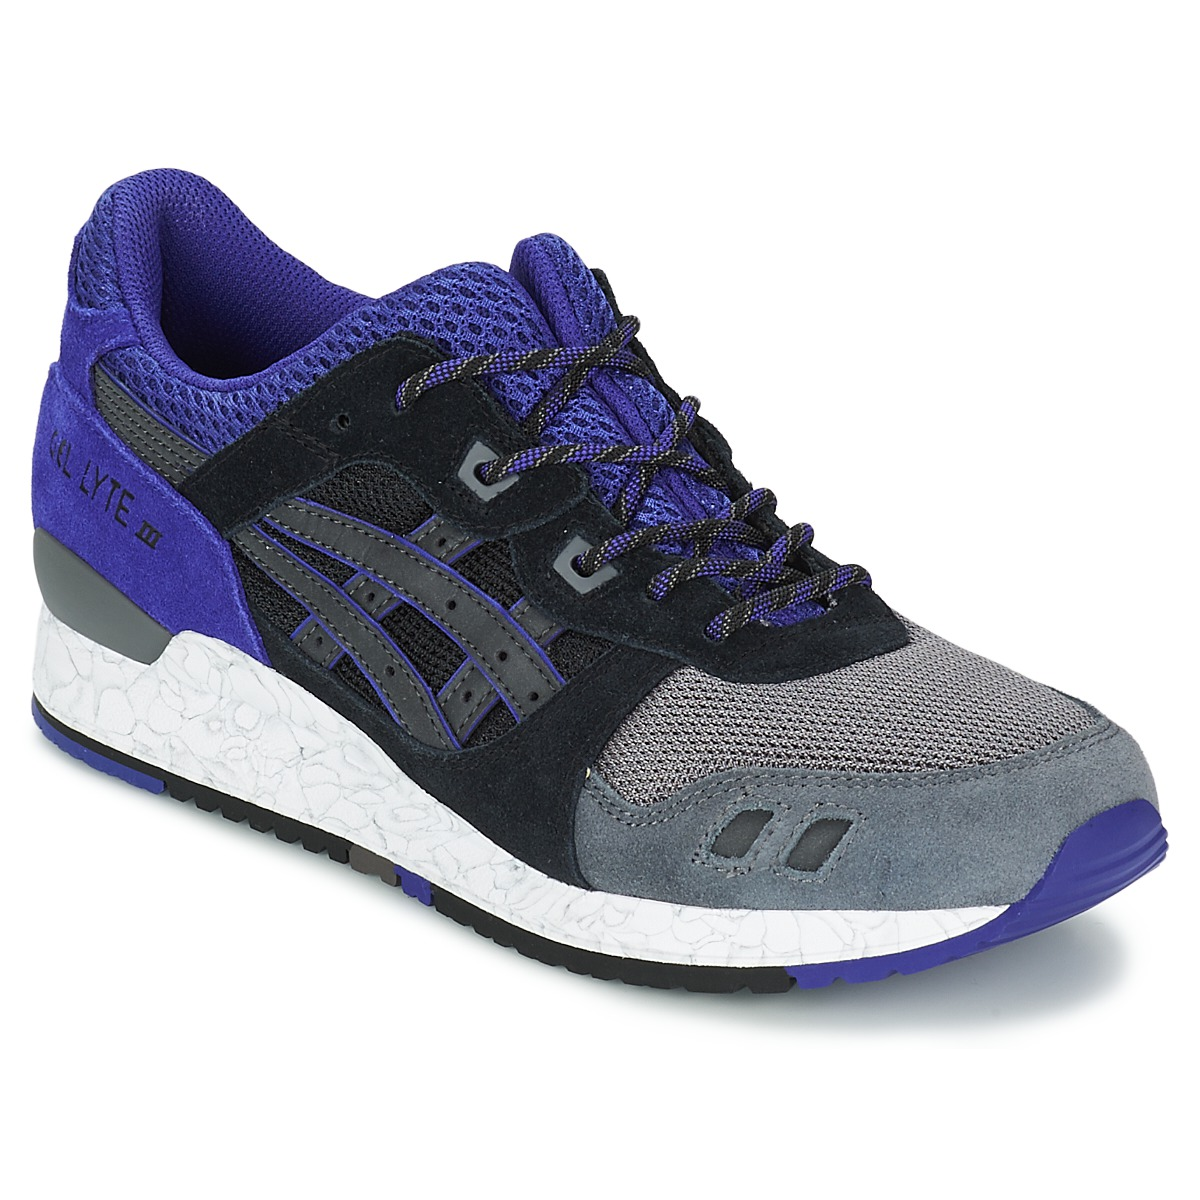 baskets basses asics gel lyte iii noir livraison gratuite avec chaussures 115 00. Black Bedroom Furniture Sets. Home Design Ideas